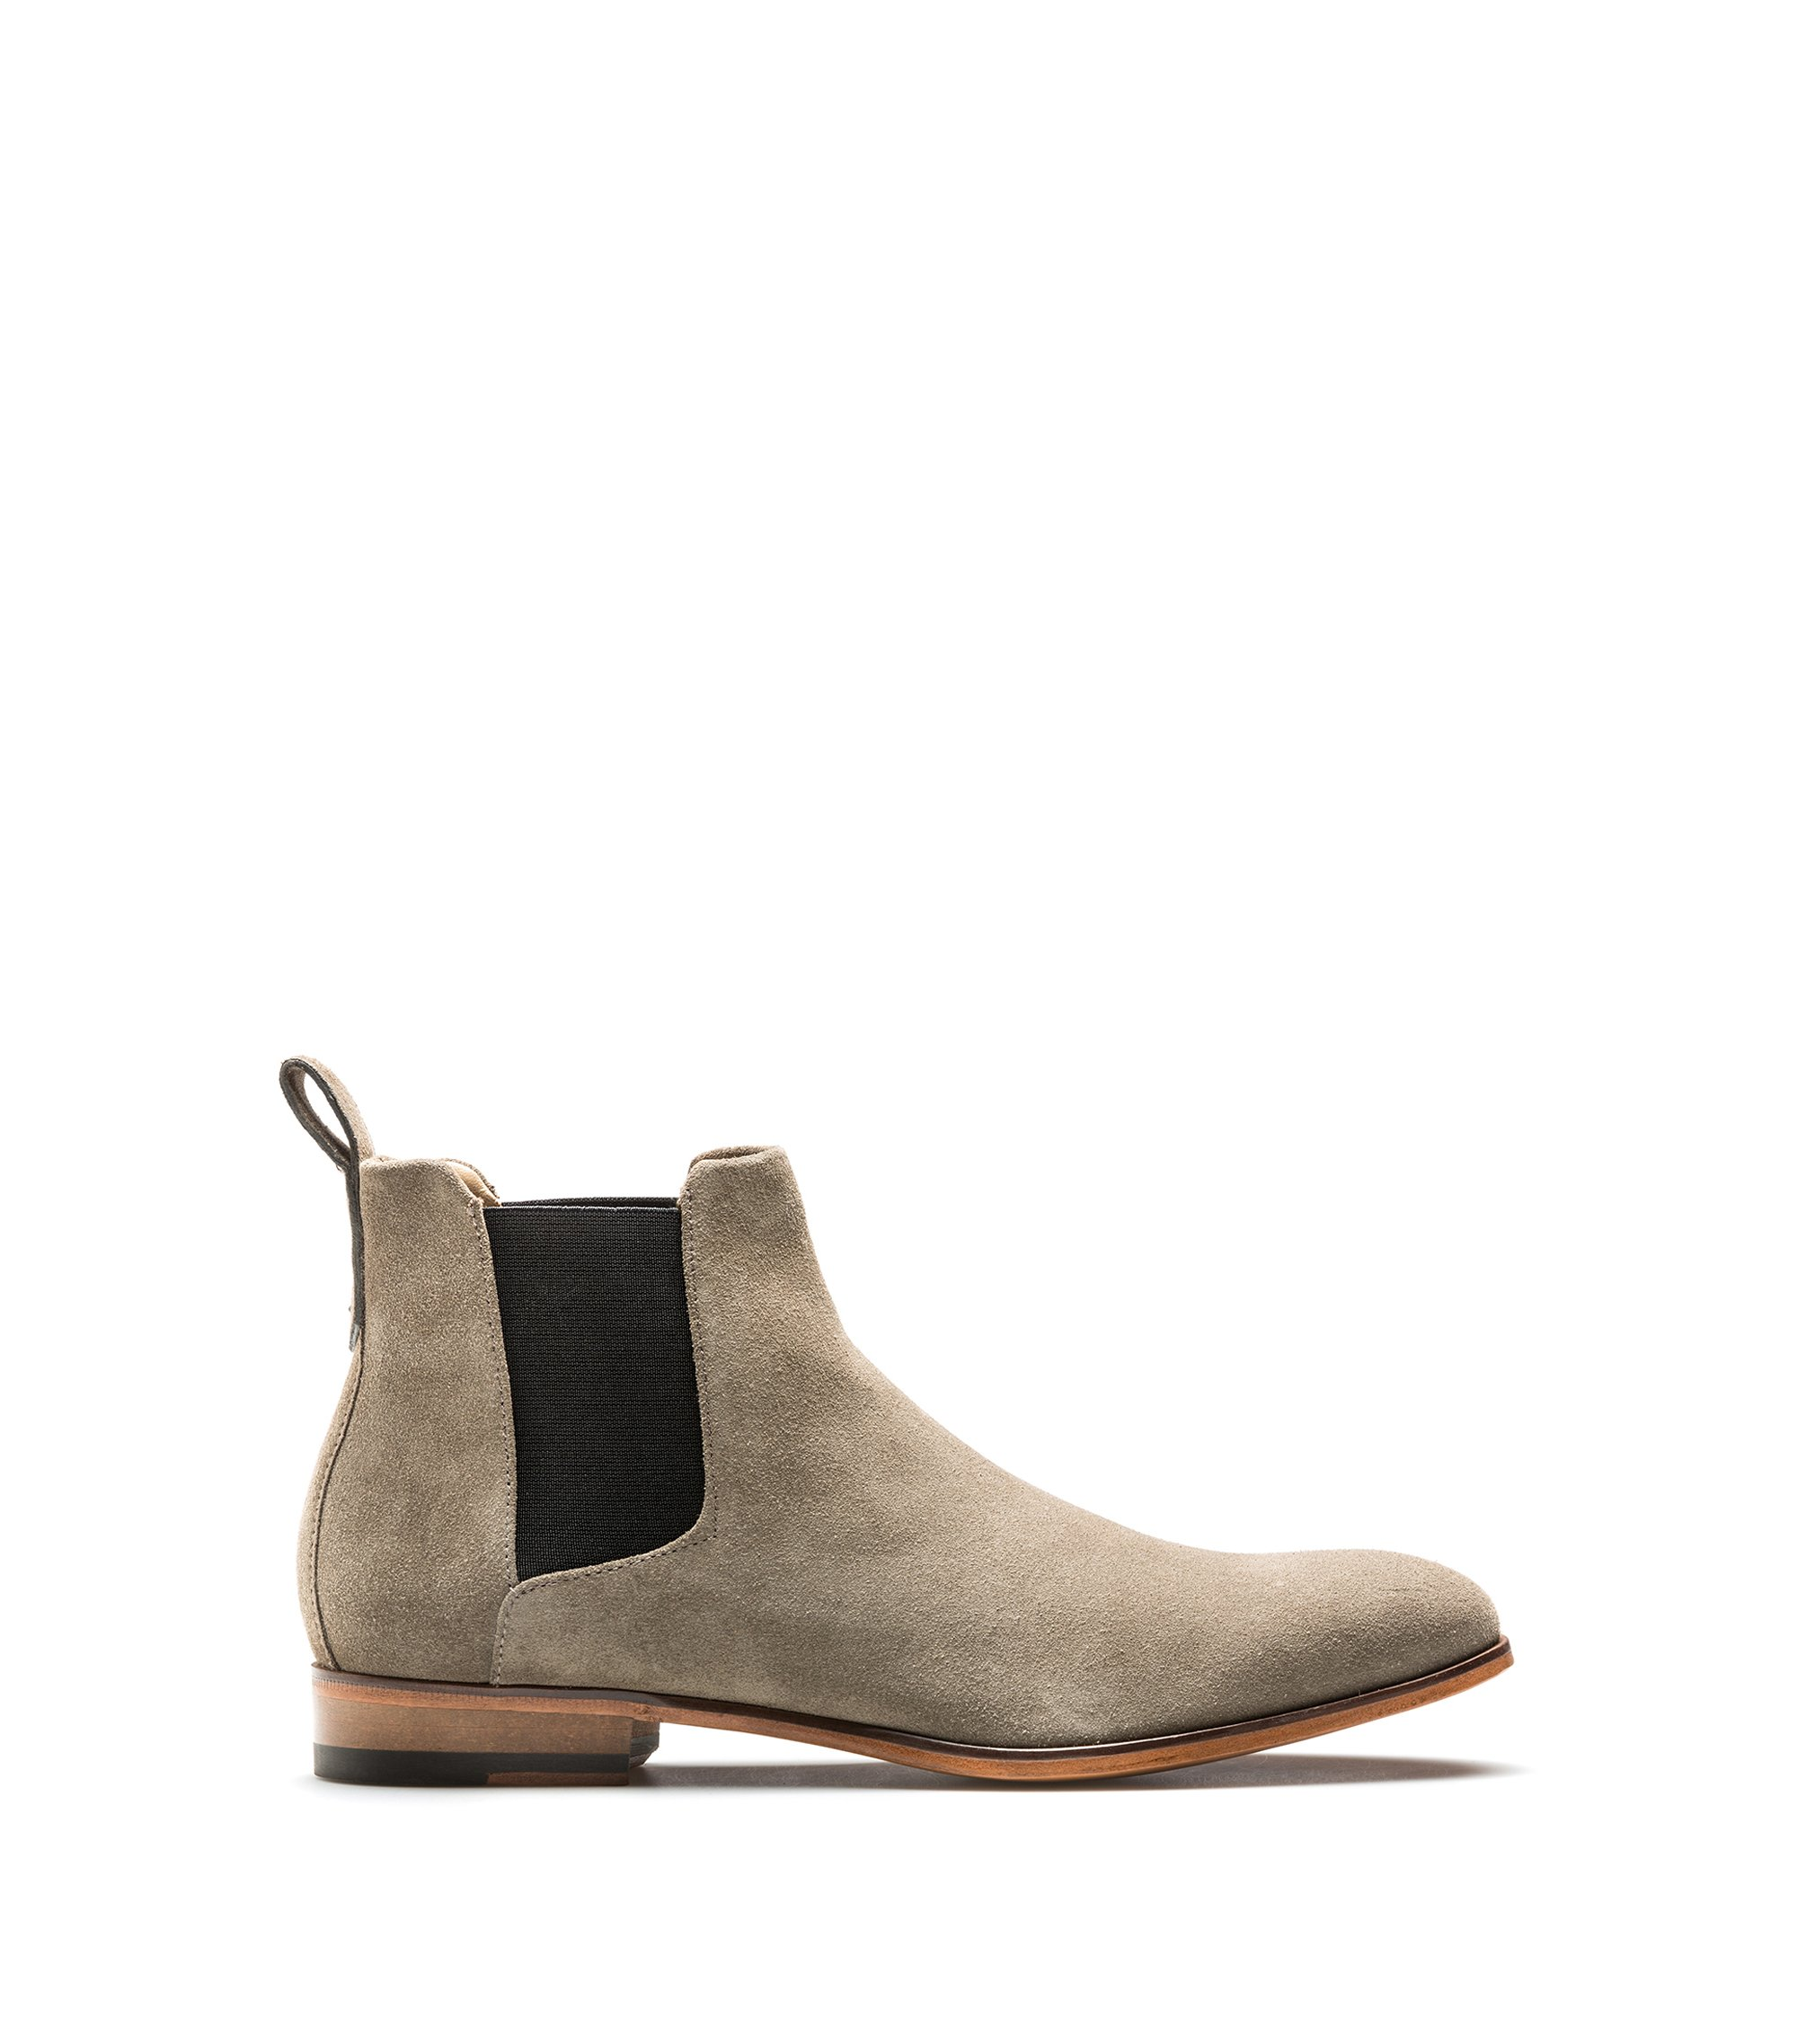 Chelsea boots in soft leather, Khaki